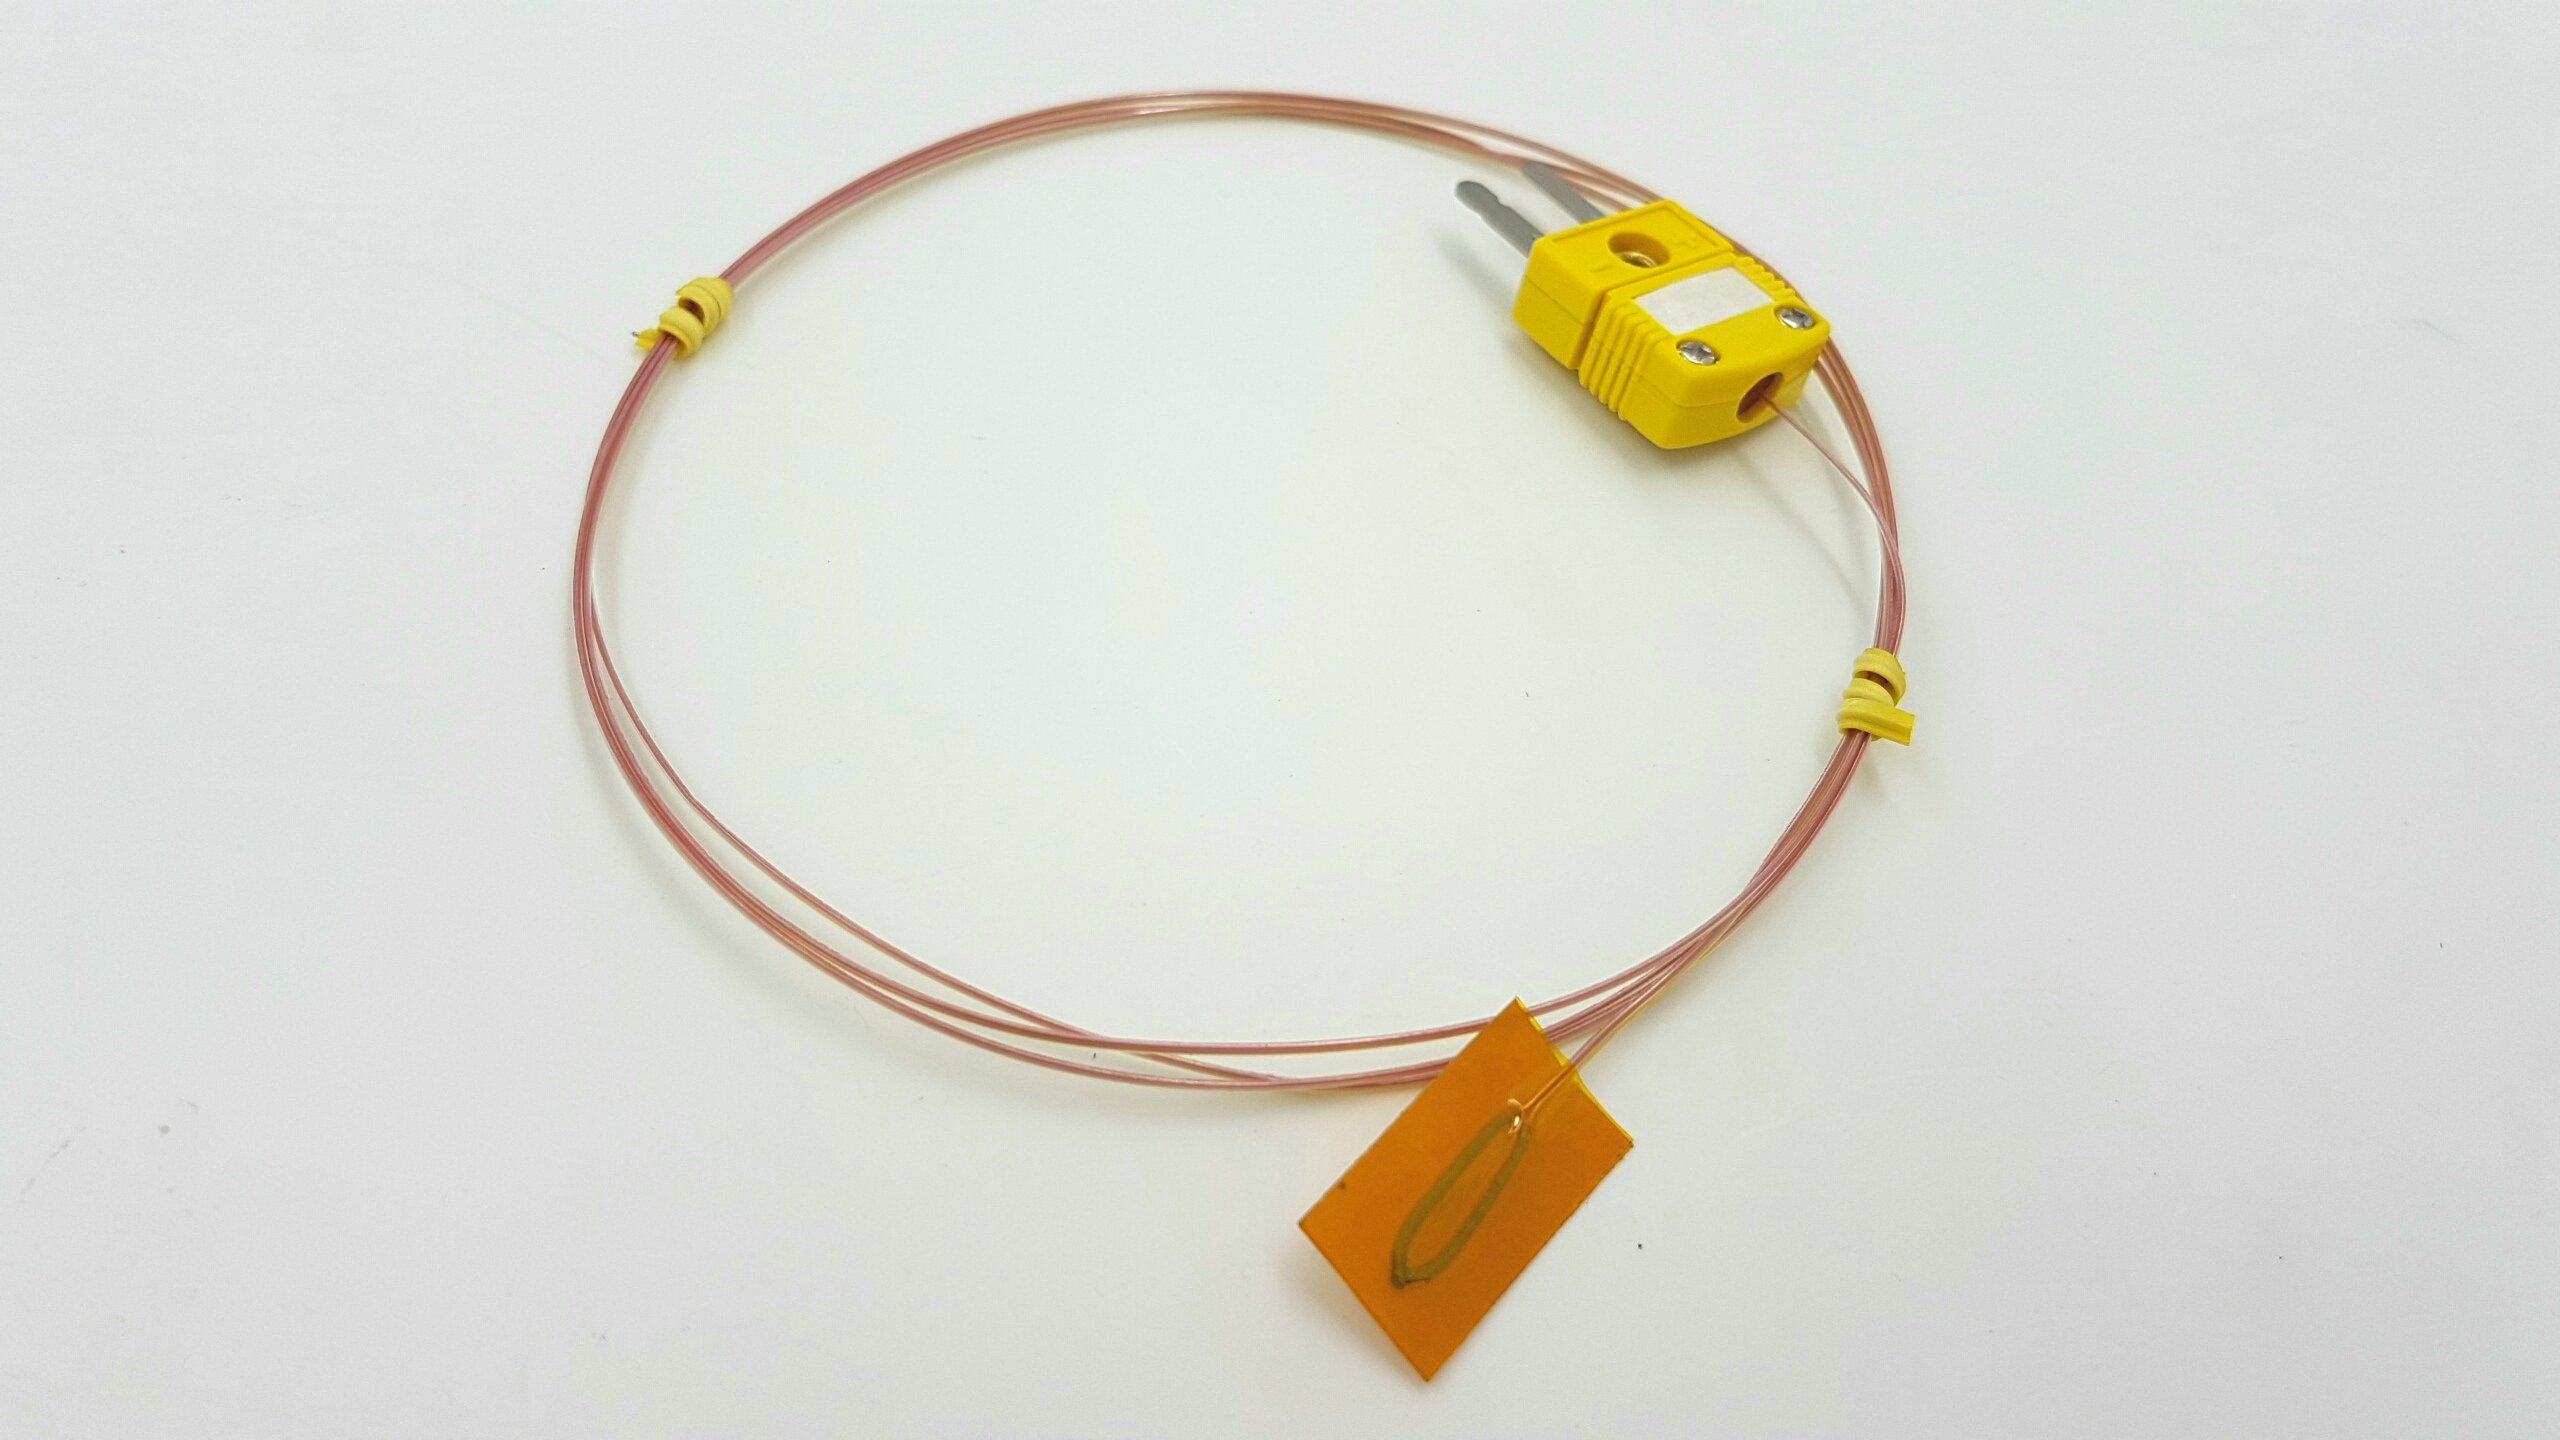 Perfect-Prime TL0225, Surface Contact ,0.25 mm diameter, K-Type Sensor Probe with Sticker for K-Type Thermocouple Thermoemter / Meter, Temperature Range up to 200 °C/ 392°F